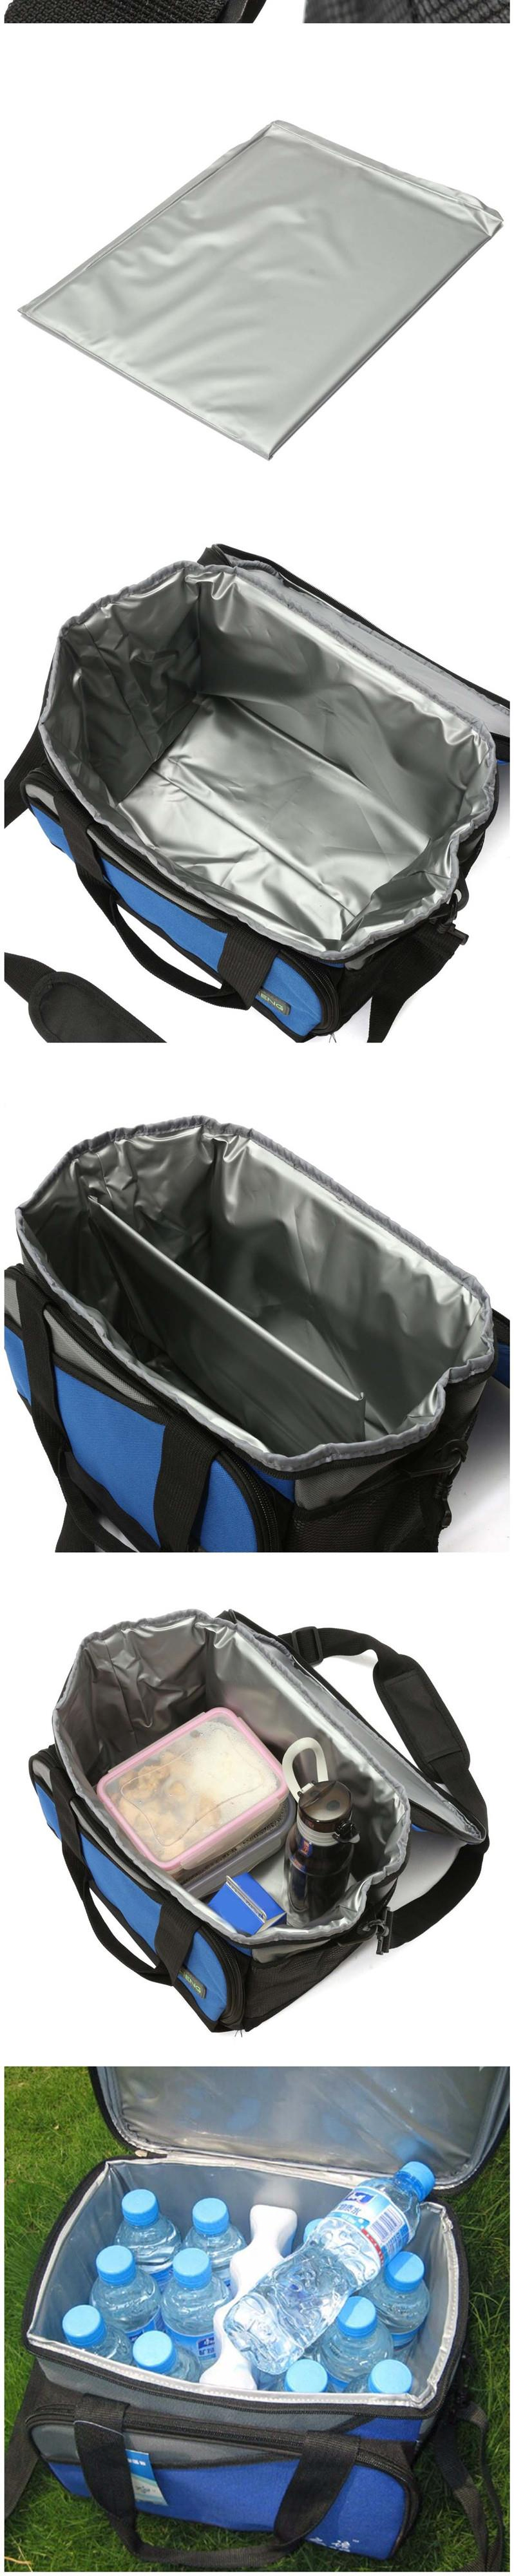 IPRee Travel Storage Bag Folding Camping Hiking Picnic BBQ Ice Bag Pack Drink Food Insulated Cooler Box